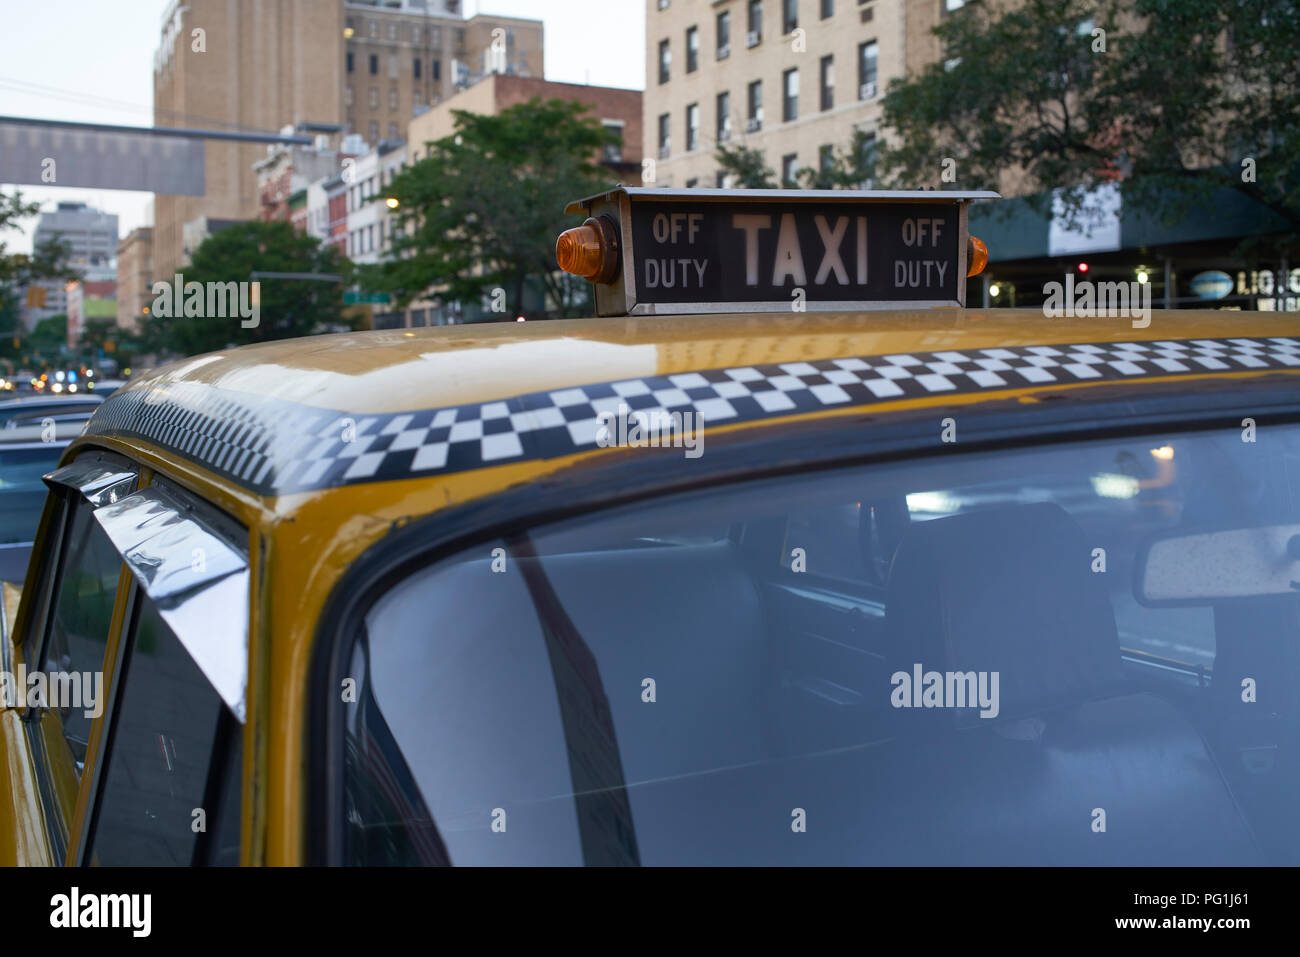 taxi occupancy sign on roof of vintage Chekers taxicab in New York City - Stock Image